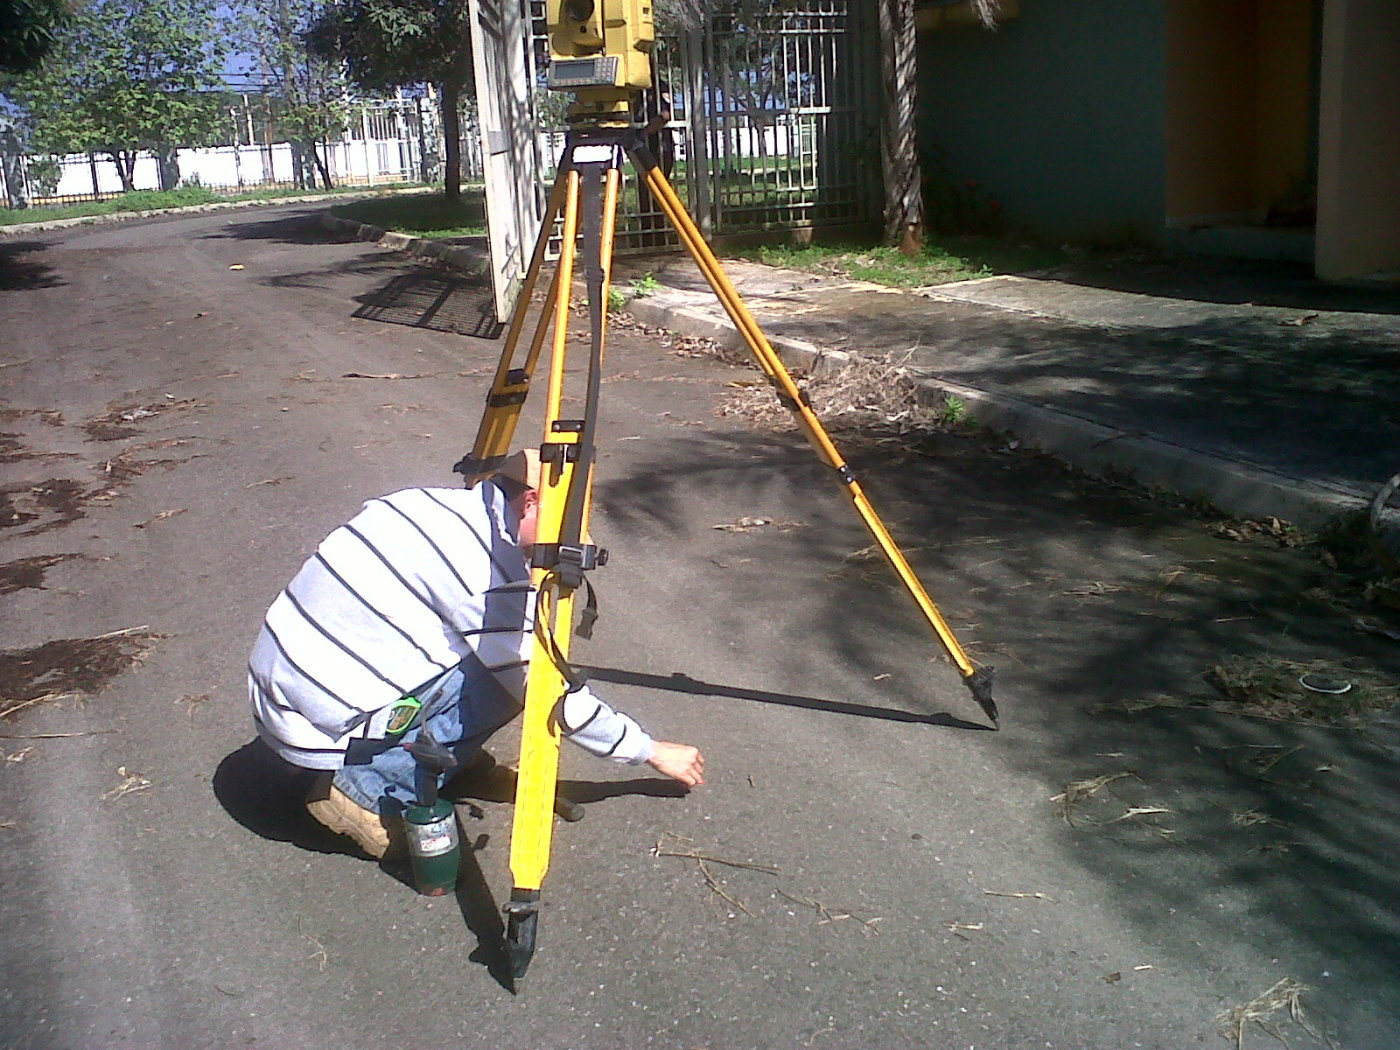 Setting up application of FREE sample of Survey Crew's paint